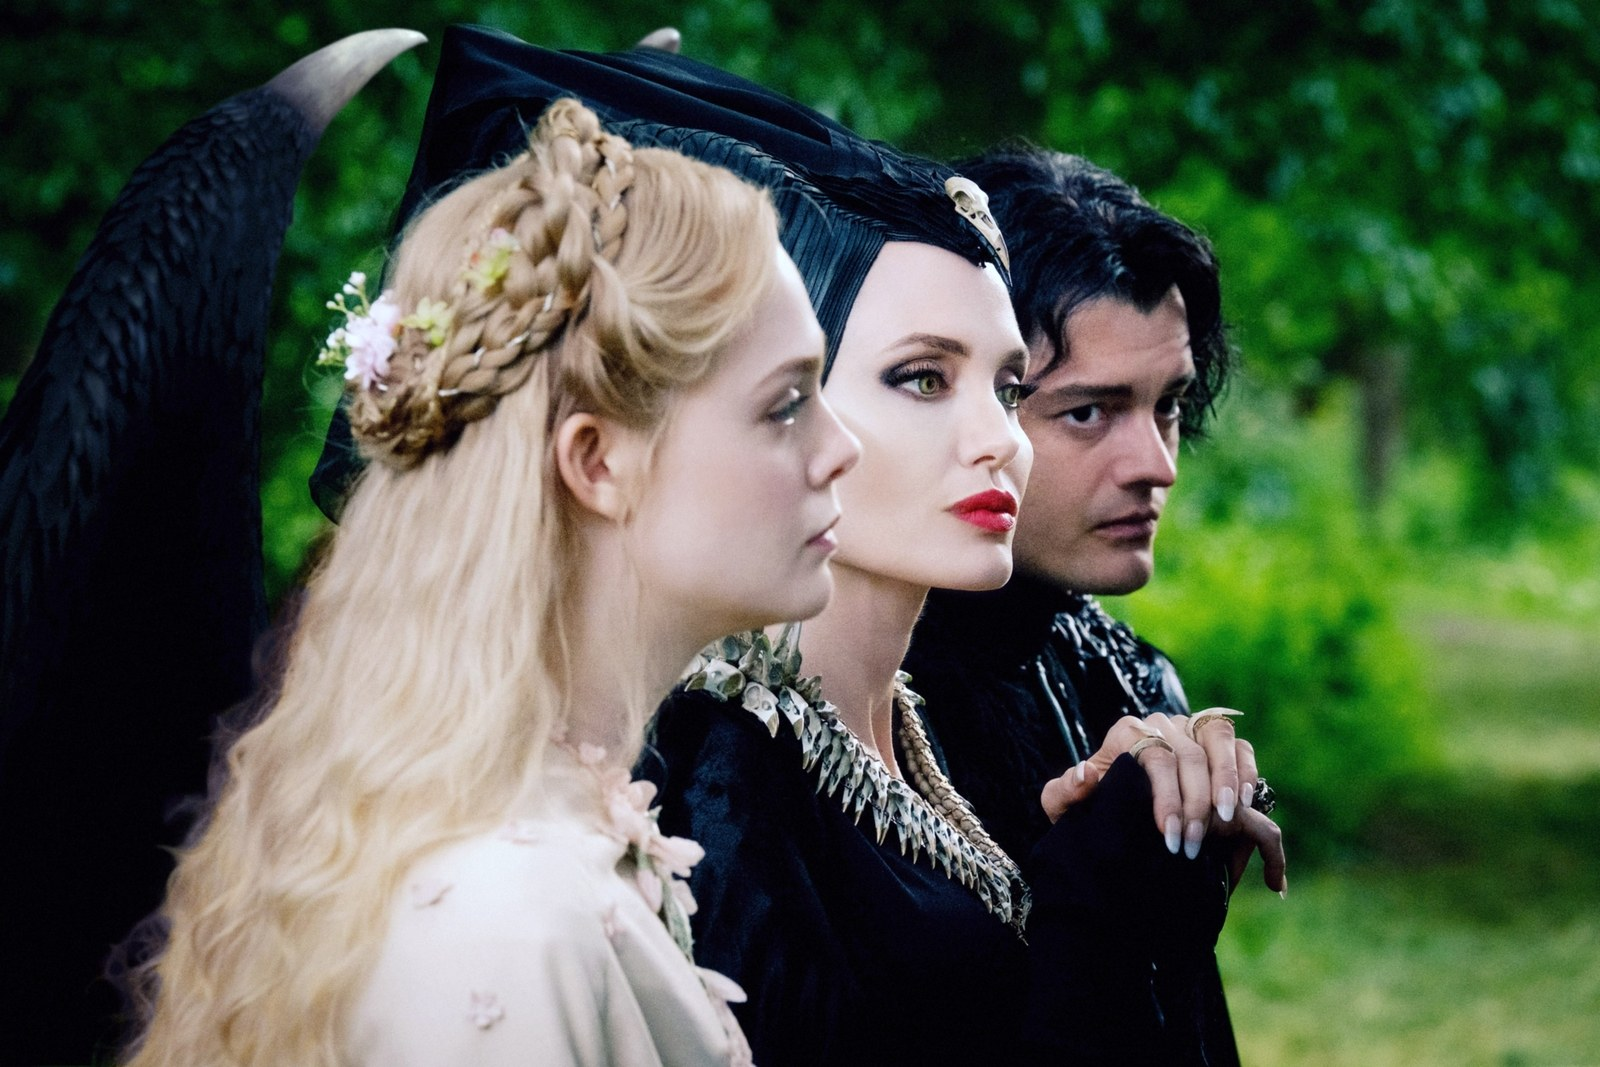 Elle Fanning as Aurora Angelina Jolie as Maleficent Sam Riley as Diaval in Maleficent